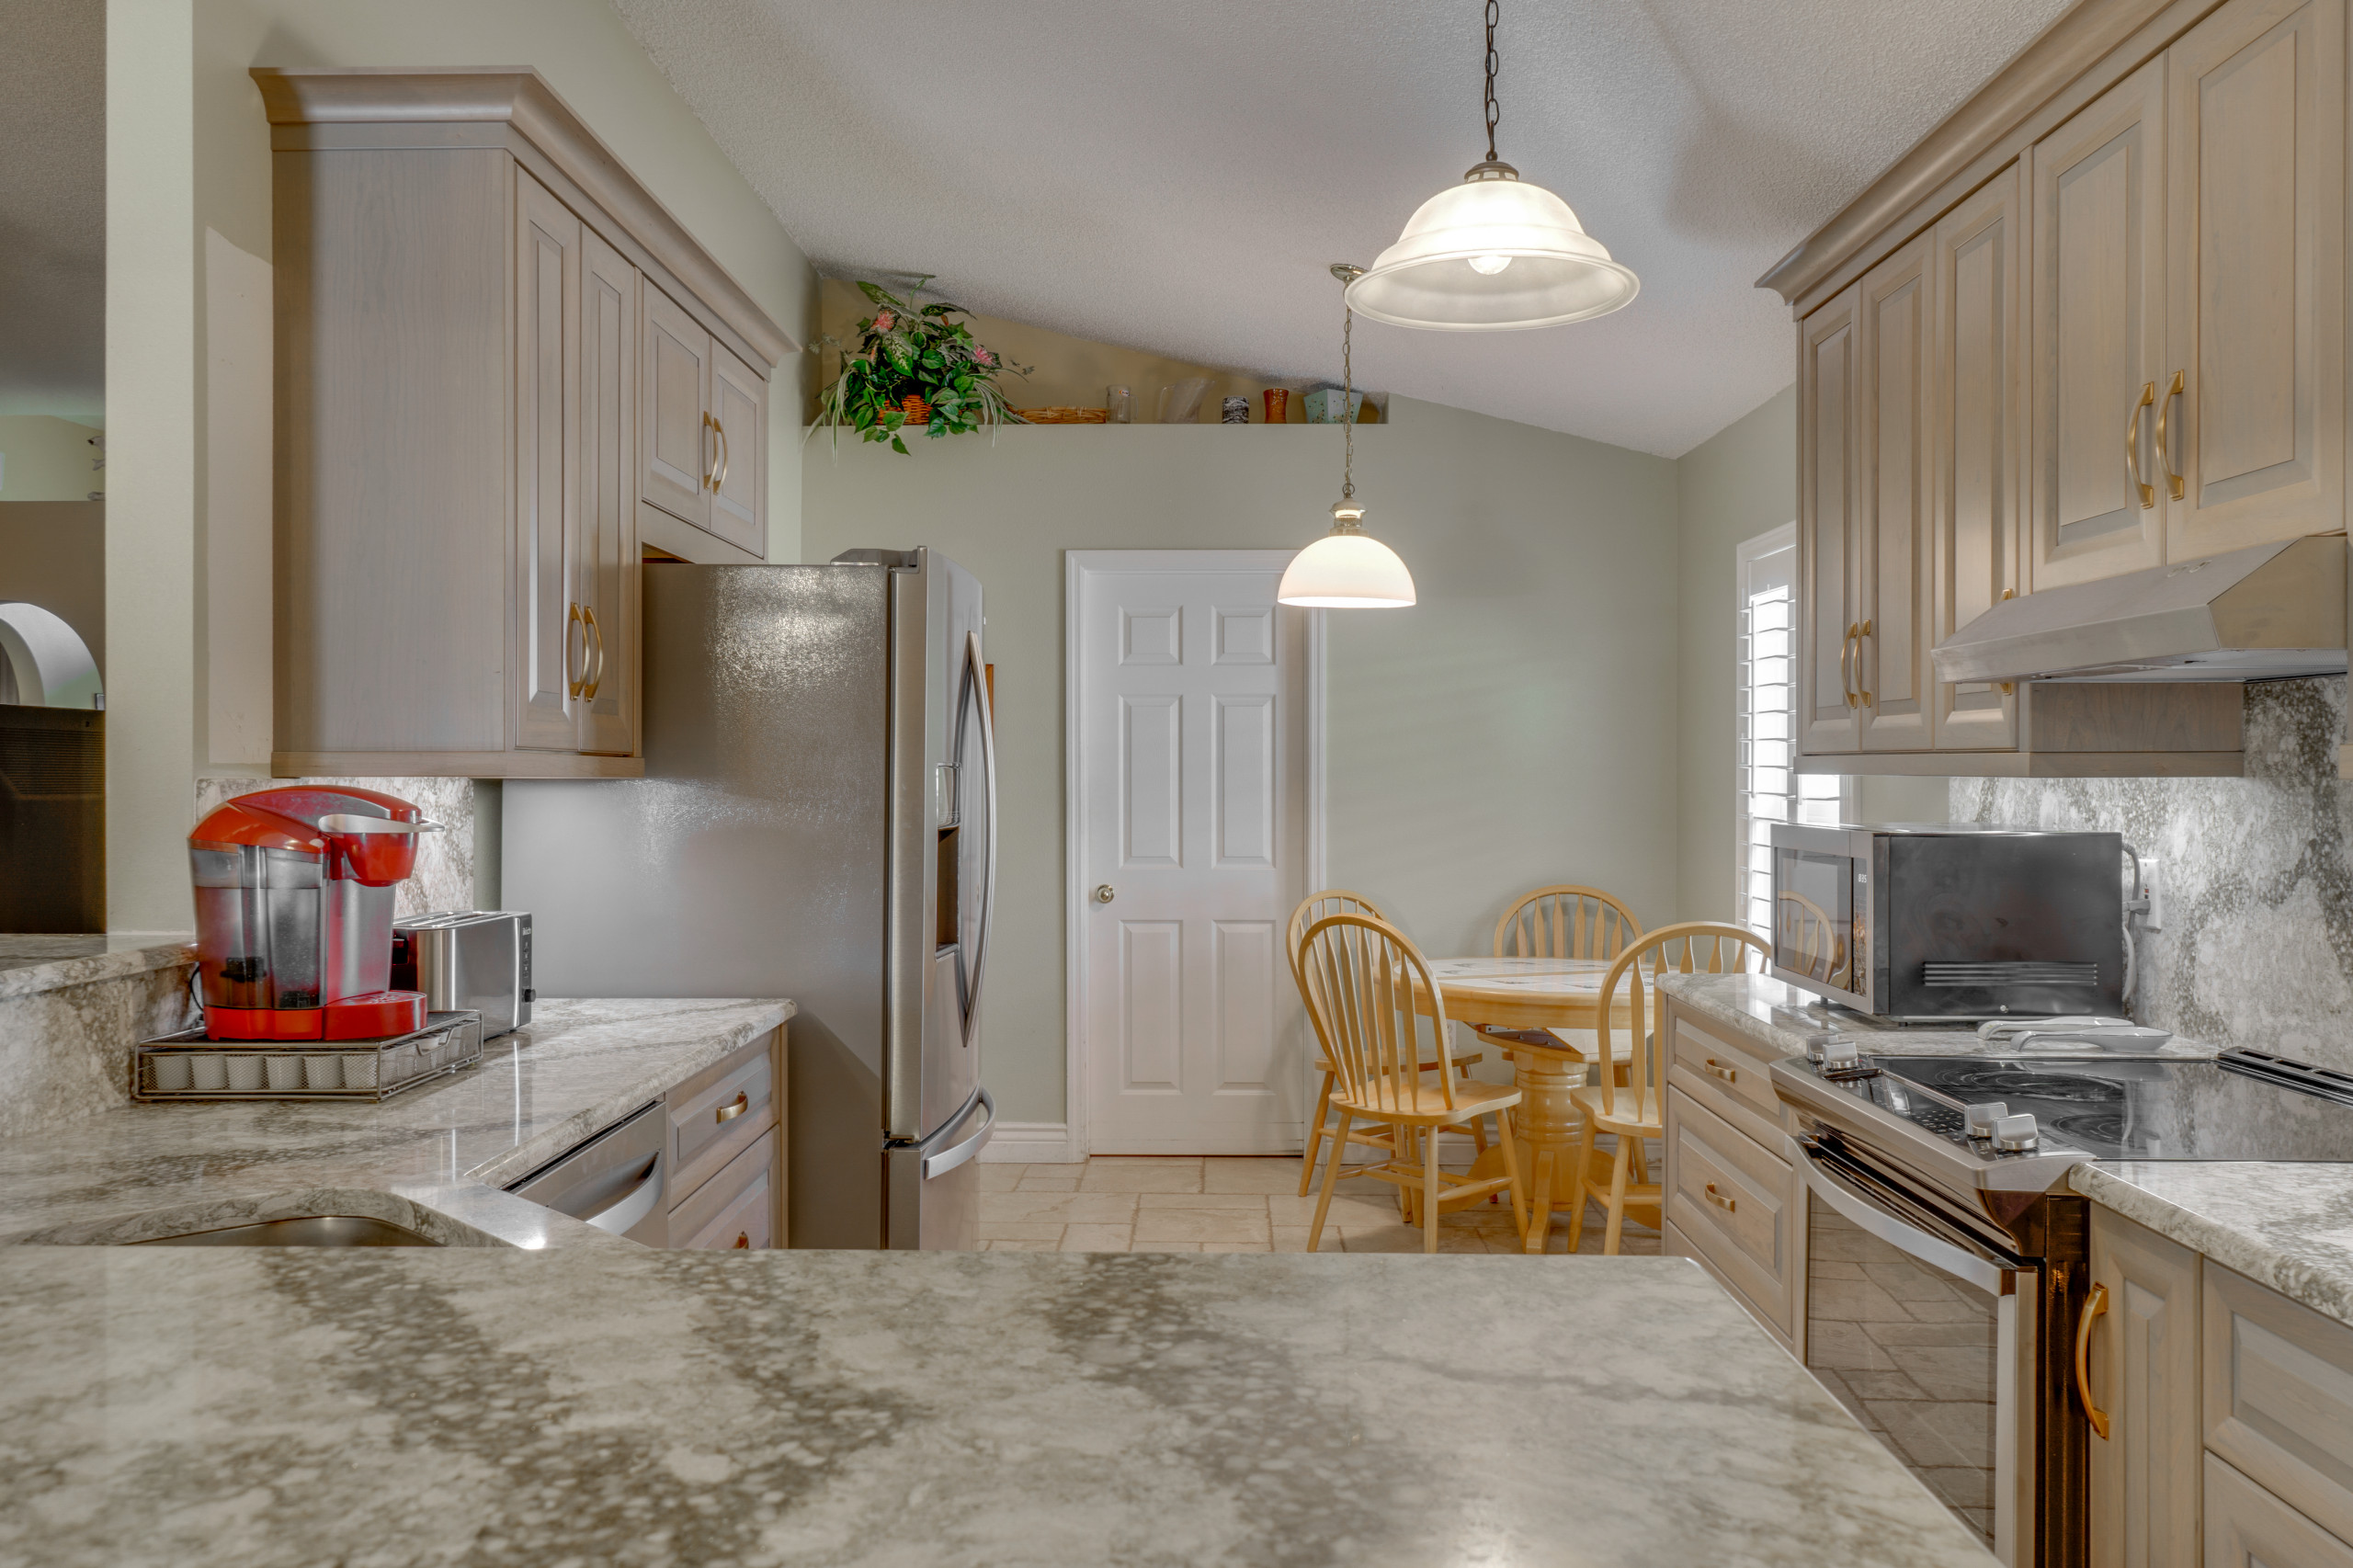 Raised Panel Cherry Kitchen Remodel in Grey Stain